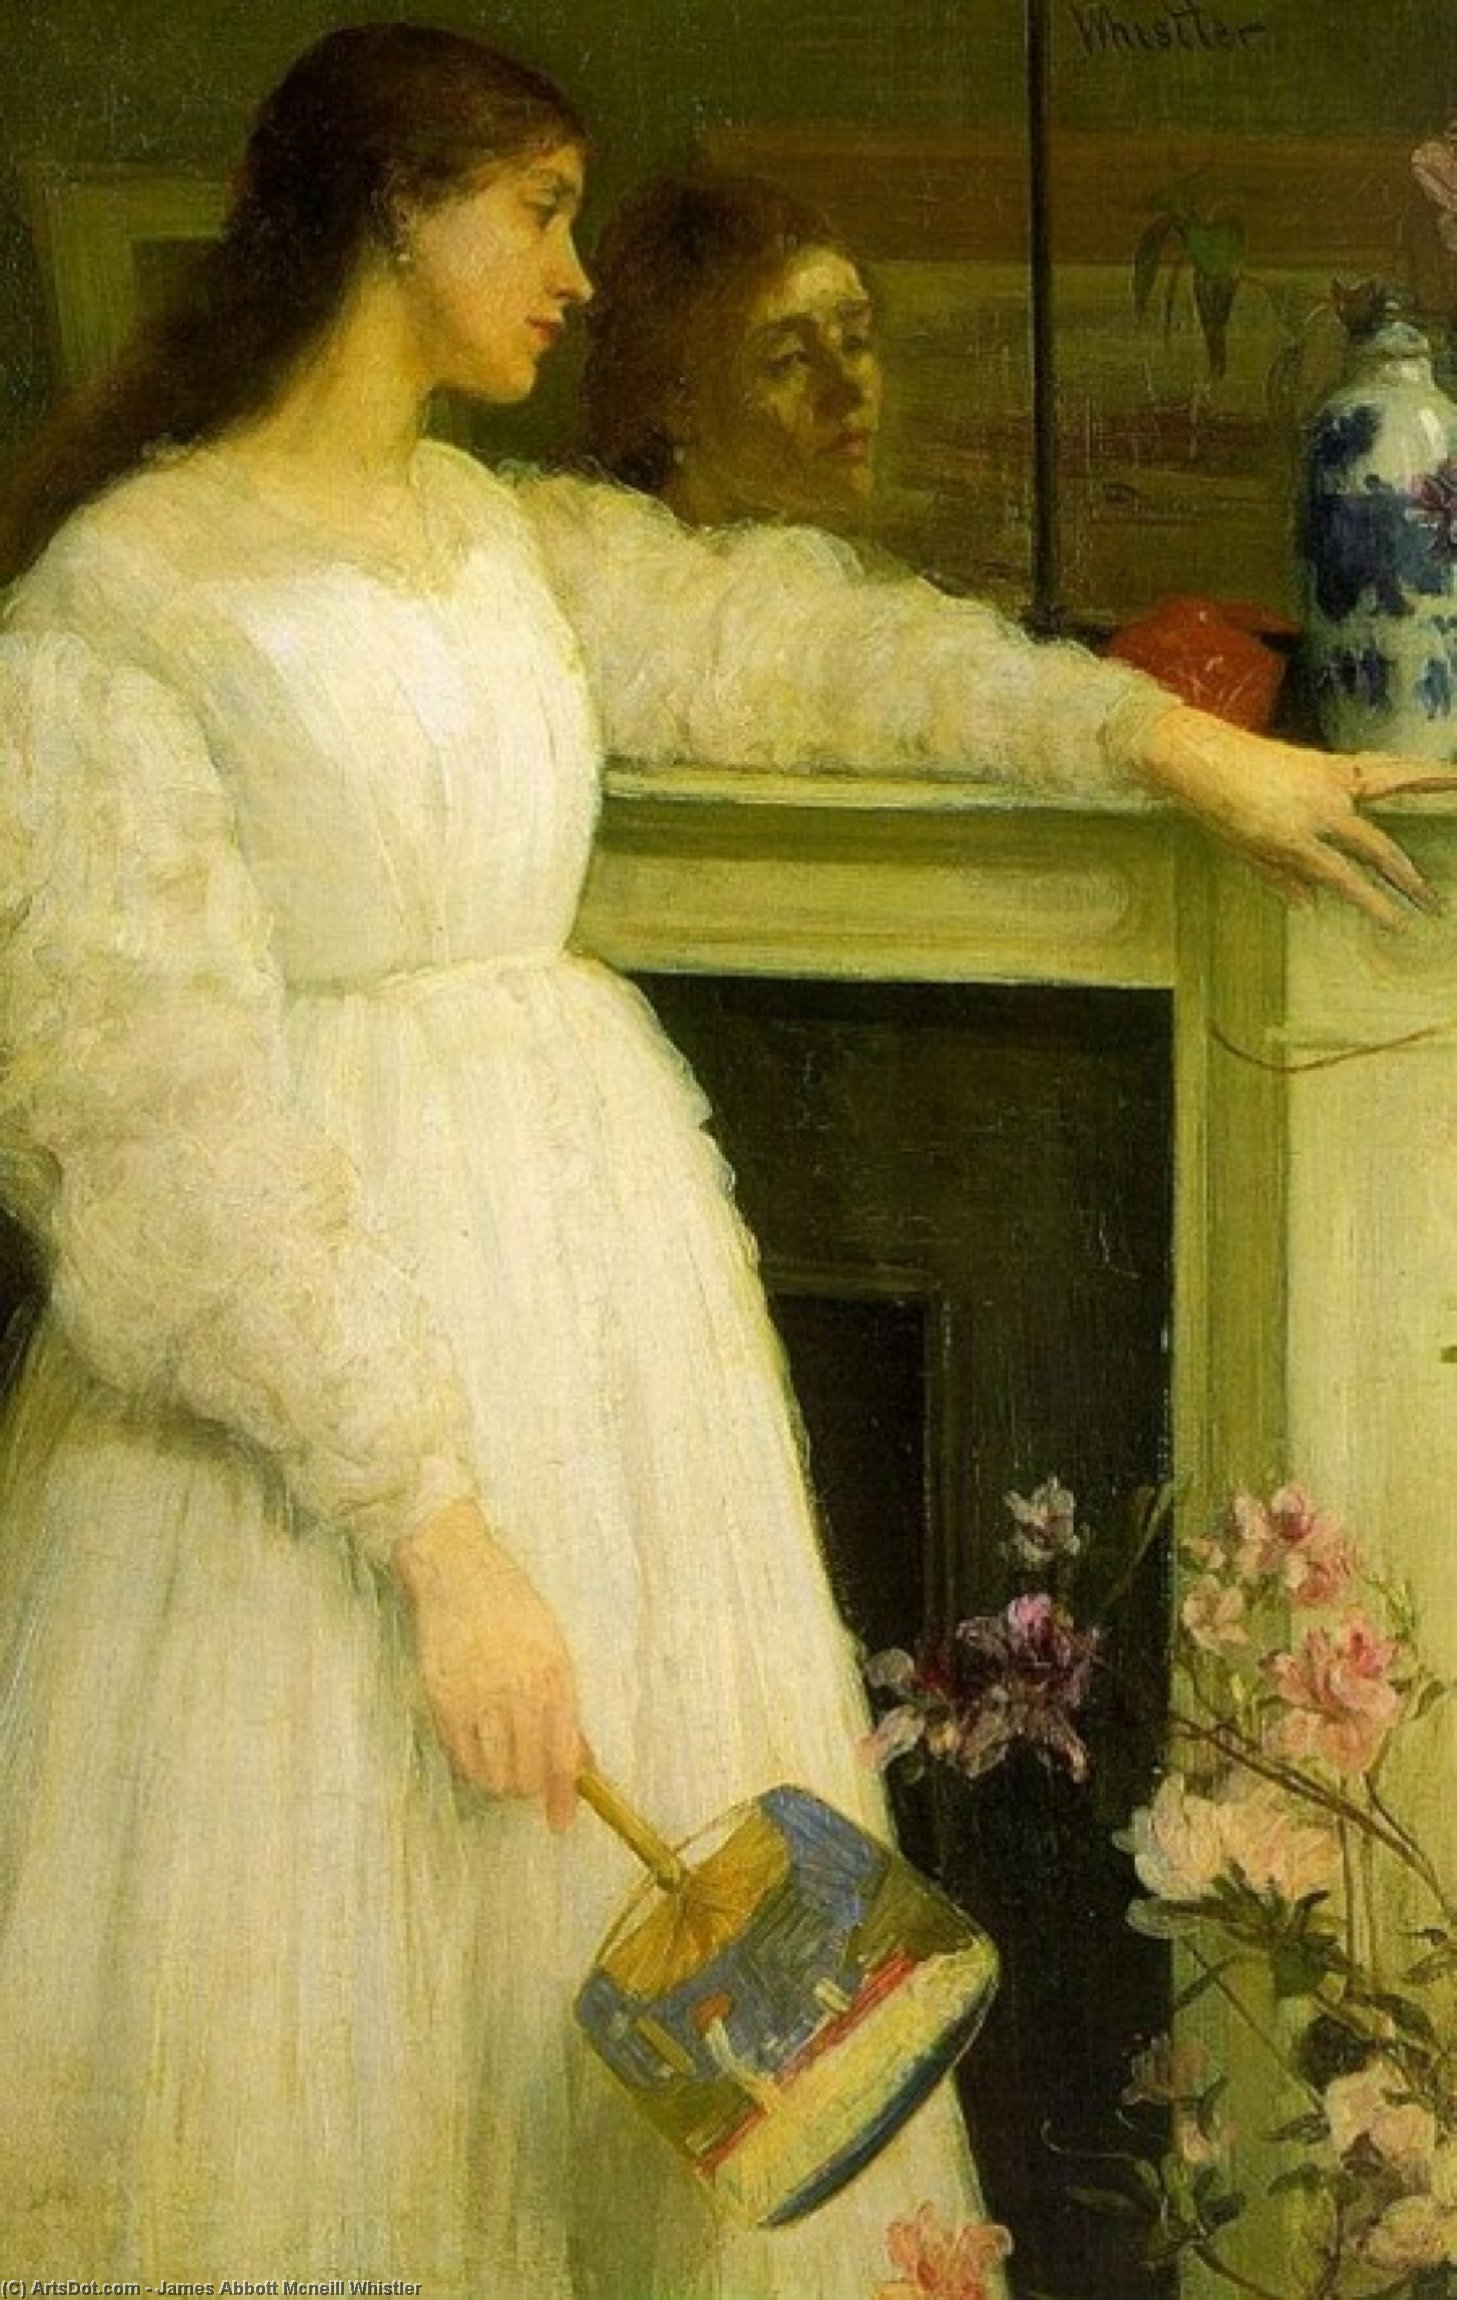 Wikioo.org - The Encyclopedia of Fine Arts - Painting, Artwork by James Abbott Mcneill Whistler - Symphony in White no 2 The Little White Girl